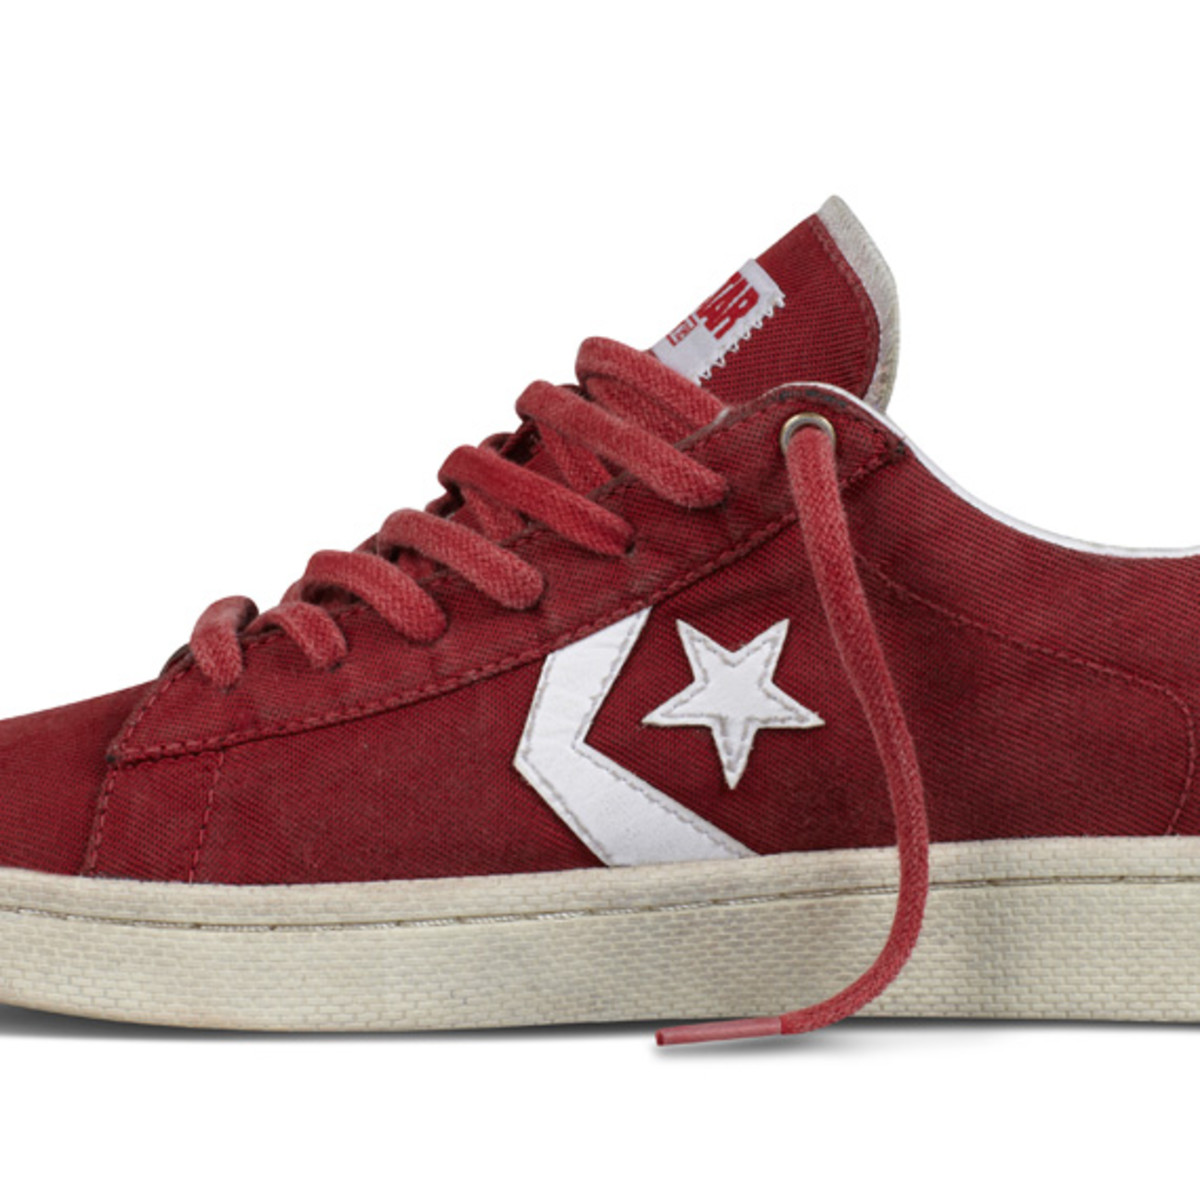 clot-converse-first-string-pro-leather-lo-09